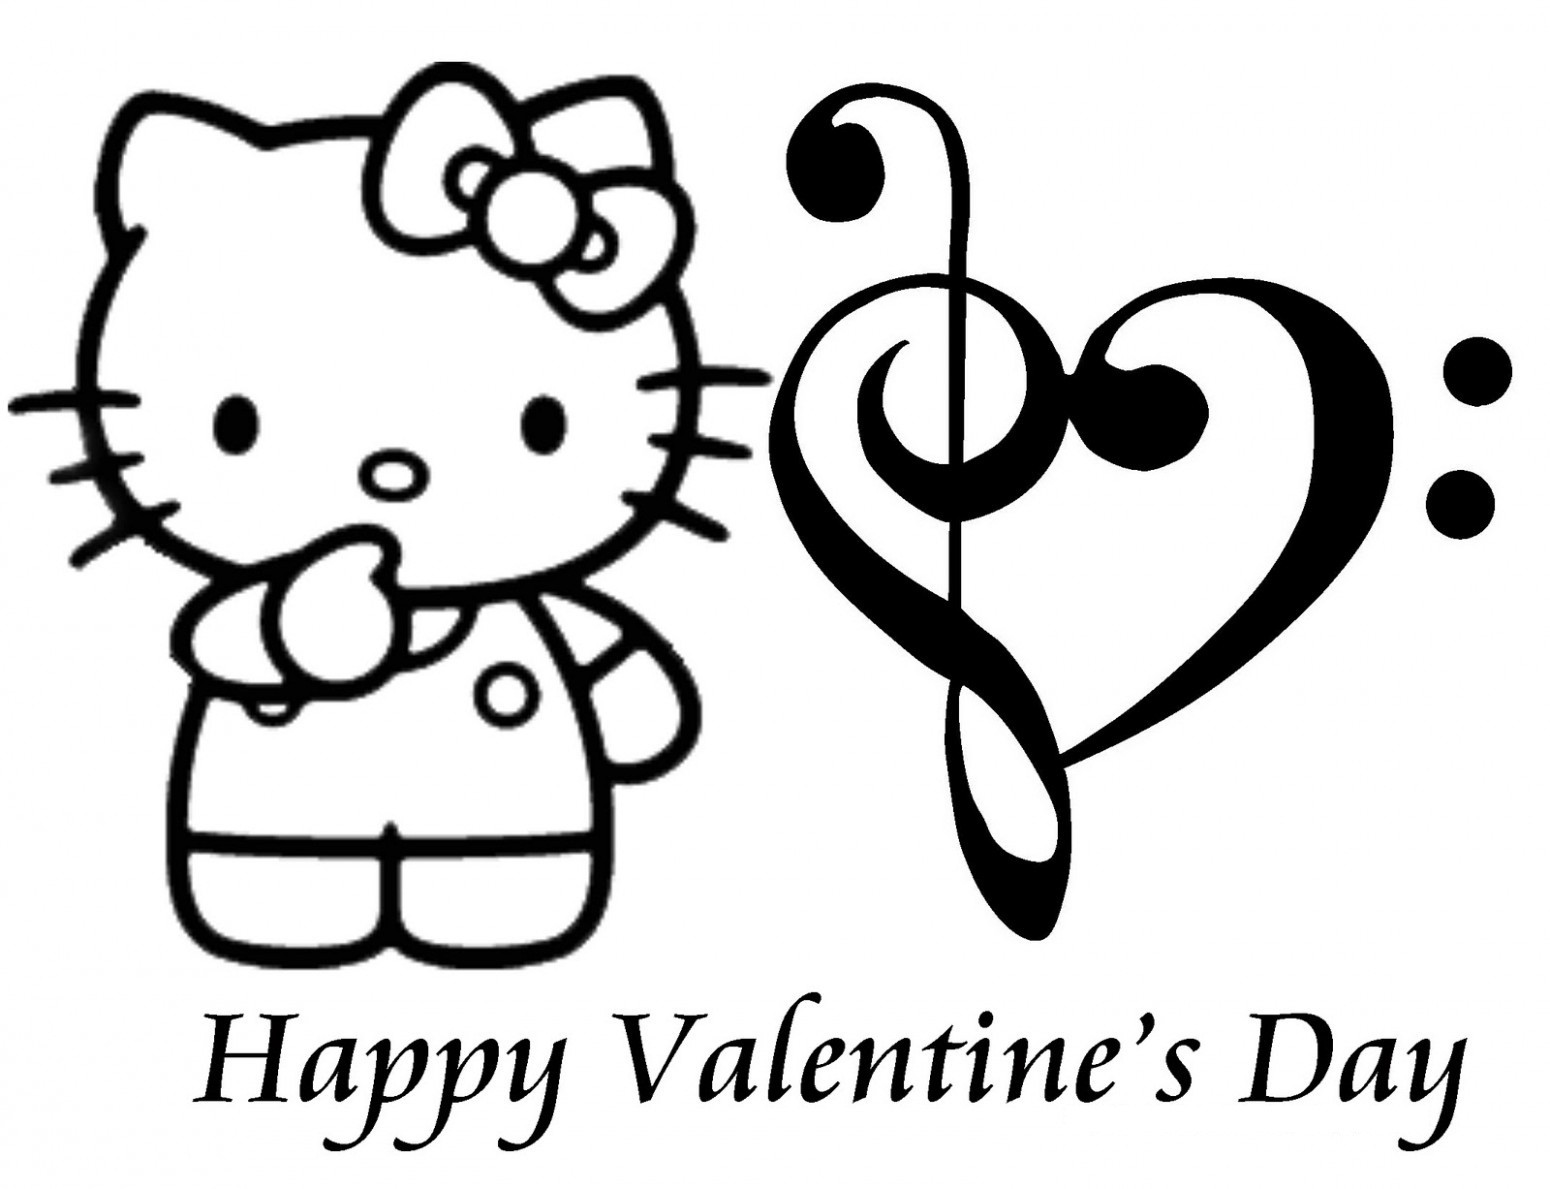 Valentines Coloring Pages Printable  Free Printable Valentine Coloring Pages For Kids